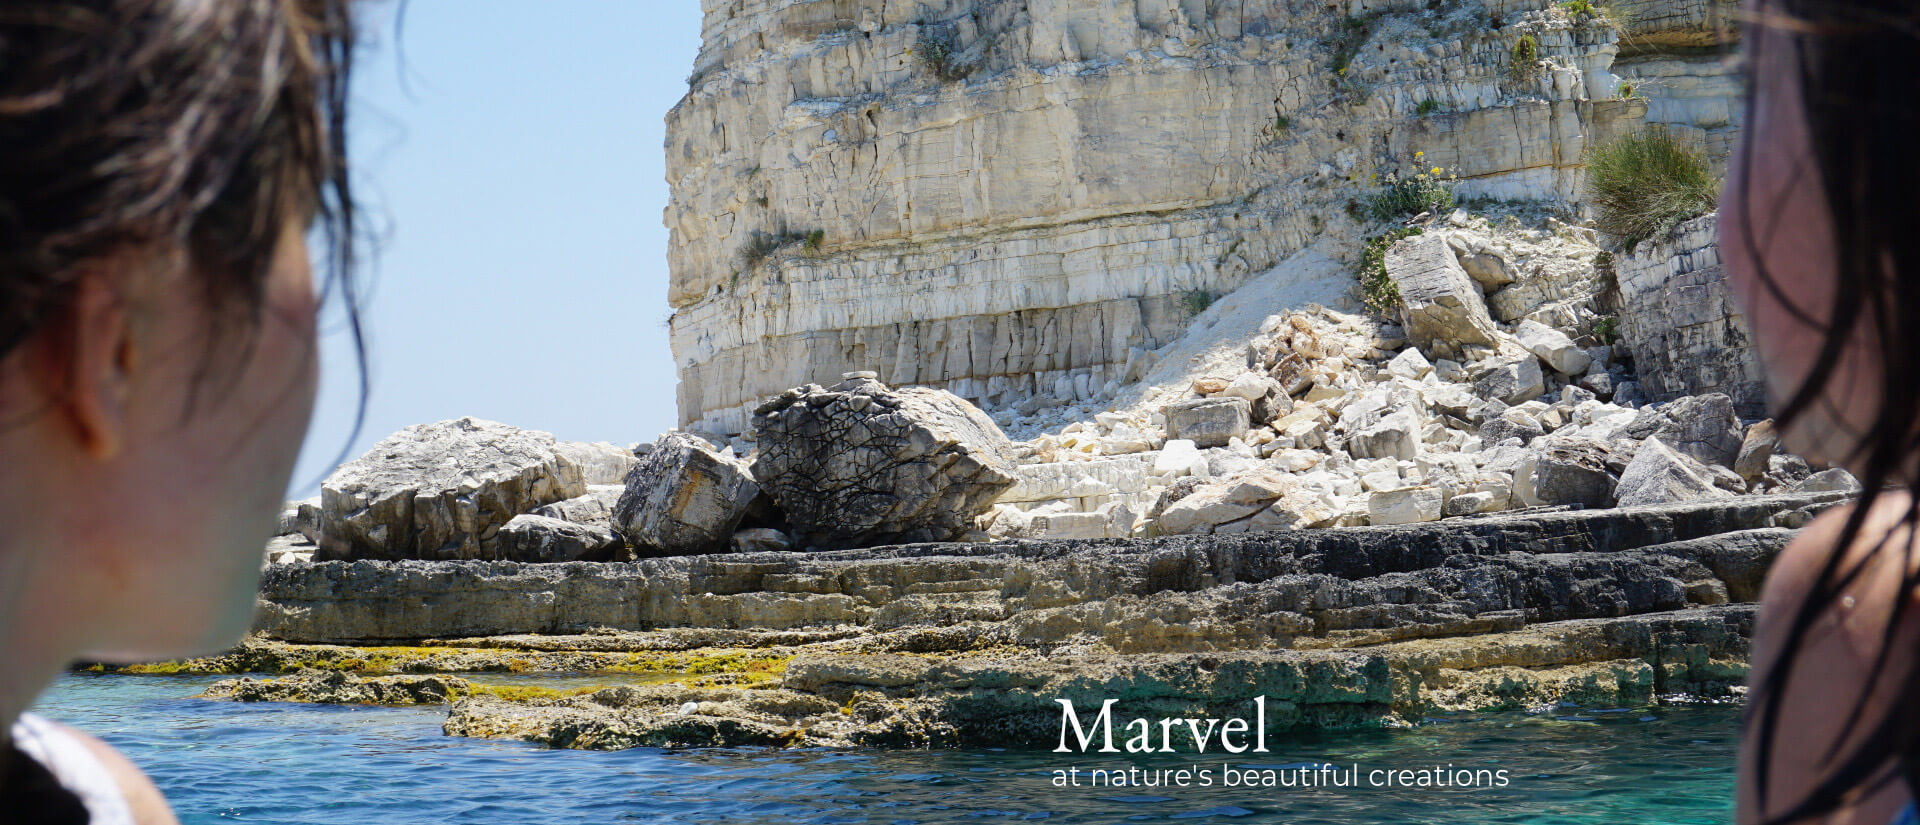 Marvel at the Ionian Islands nature's beautiful creations